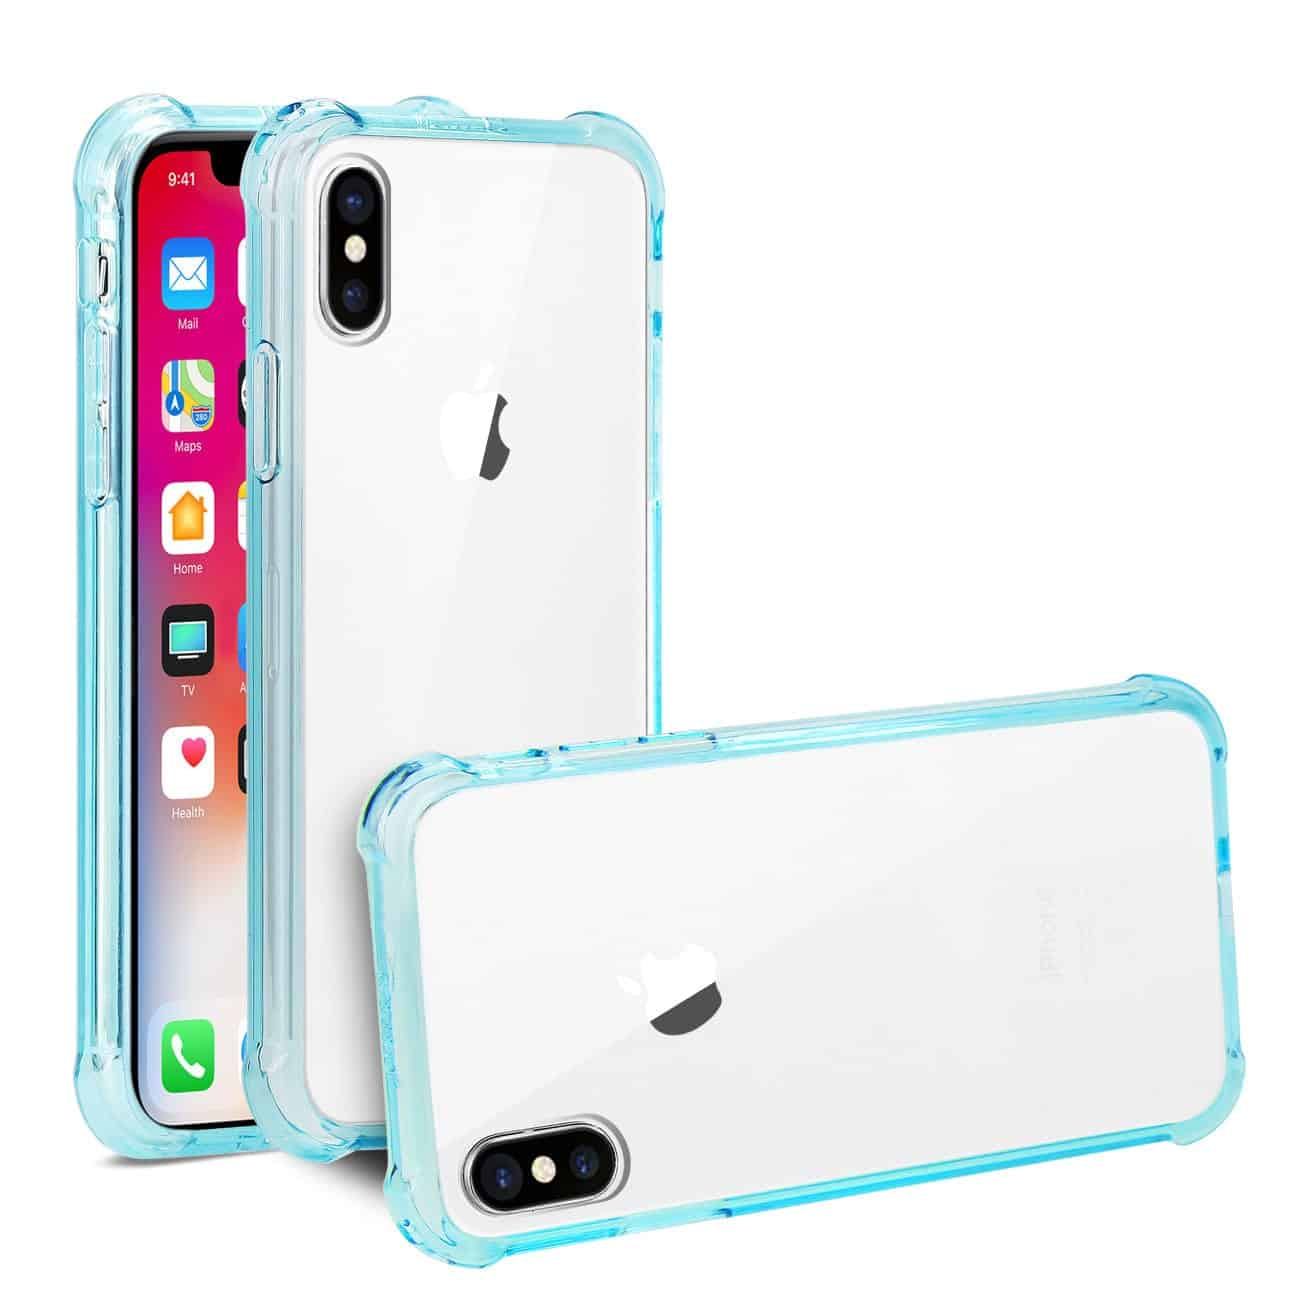 iPhone X Clear Bumper Case With Air Cushion Protection In Clear Navy